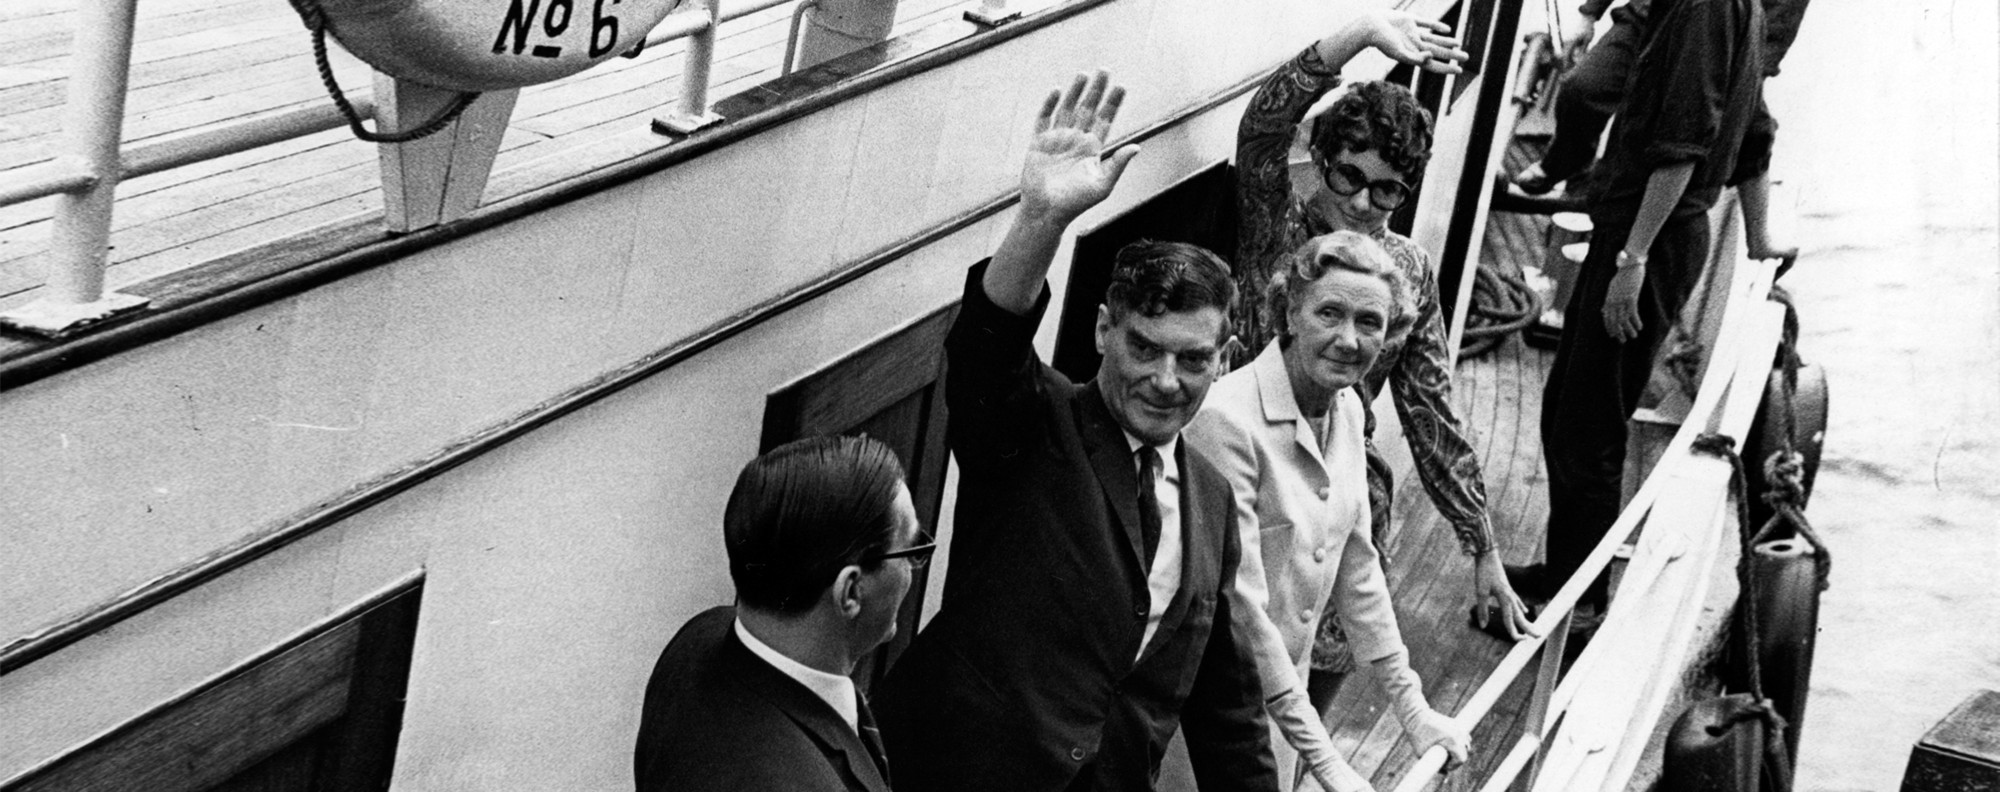 Michael Wright waves farewell at Queen's Pier, on March 28, 1969.